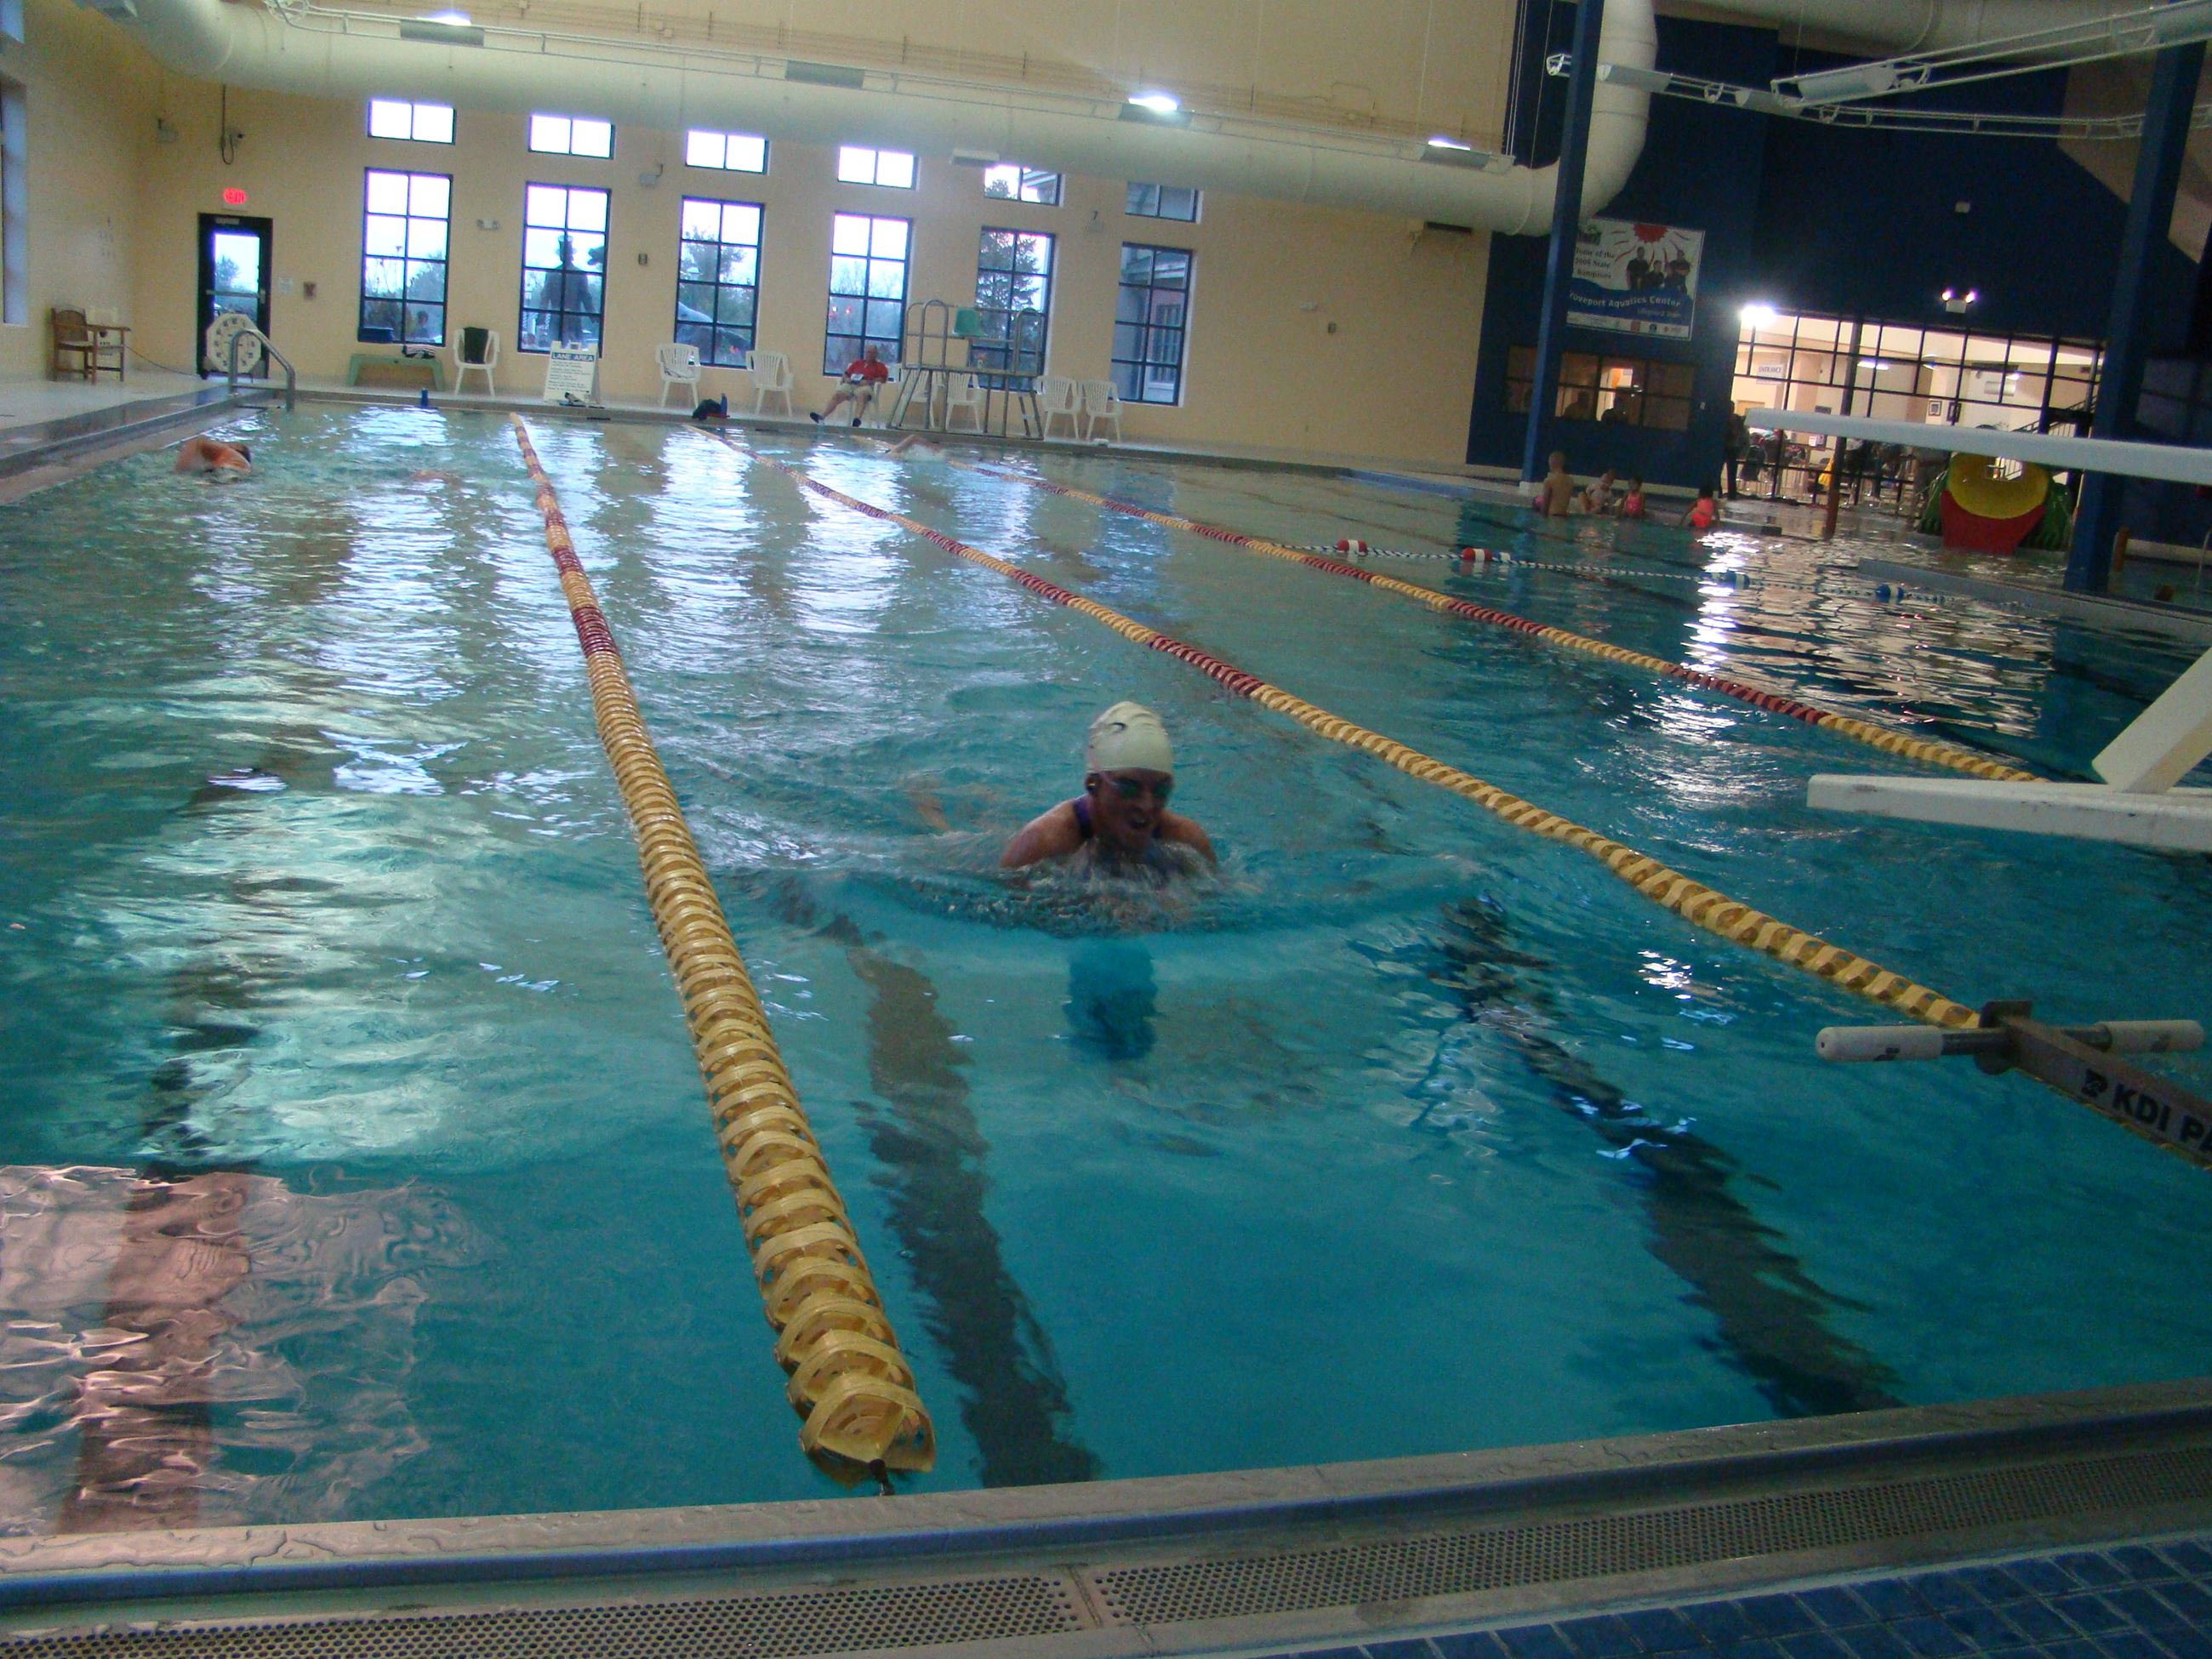 A swimmer swimming laps in a lane at the indoor pool.